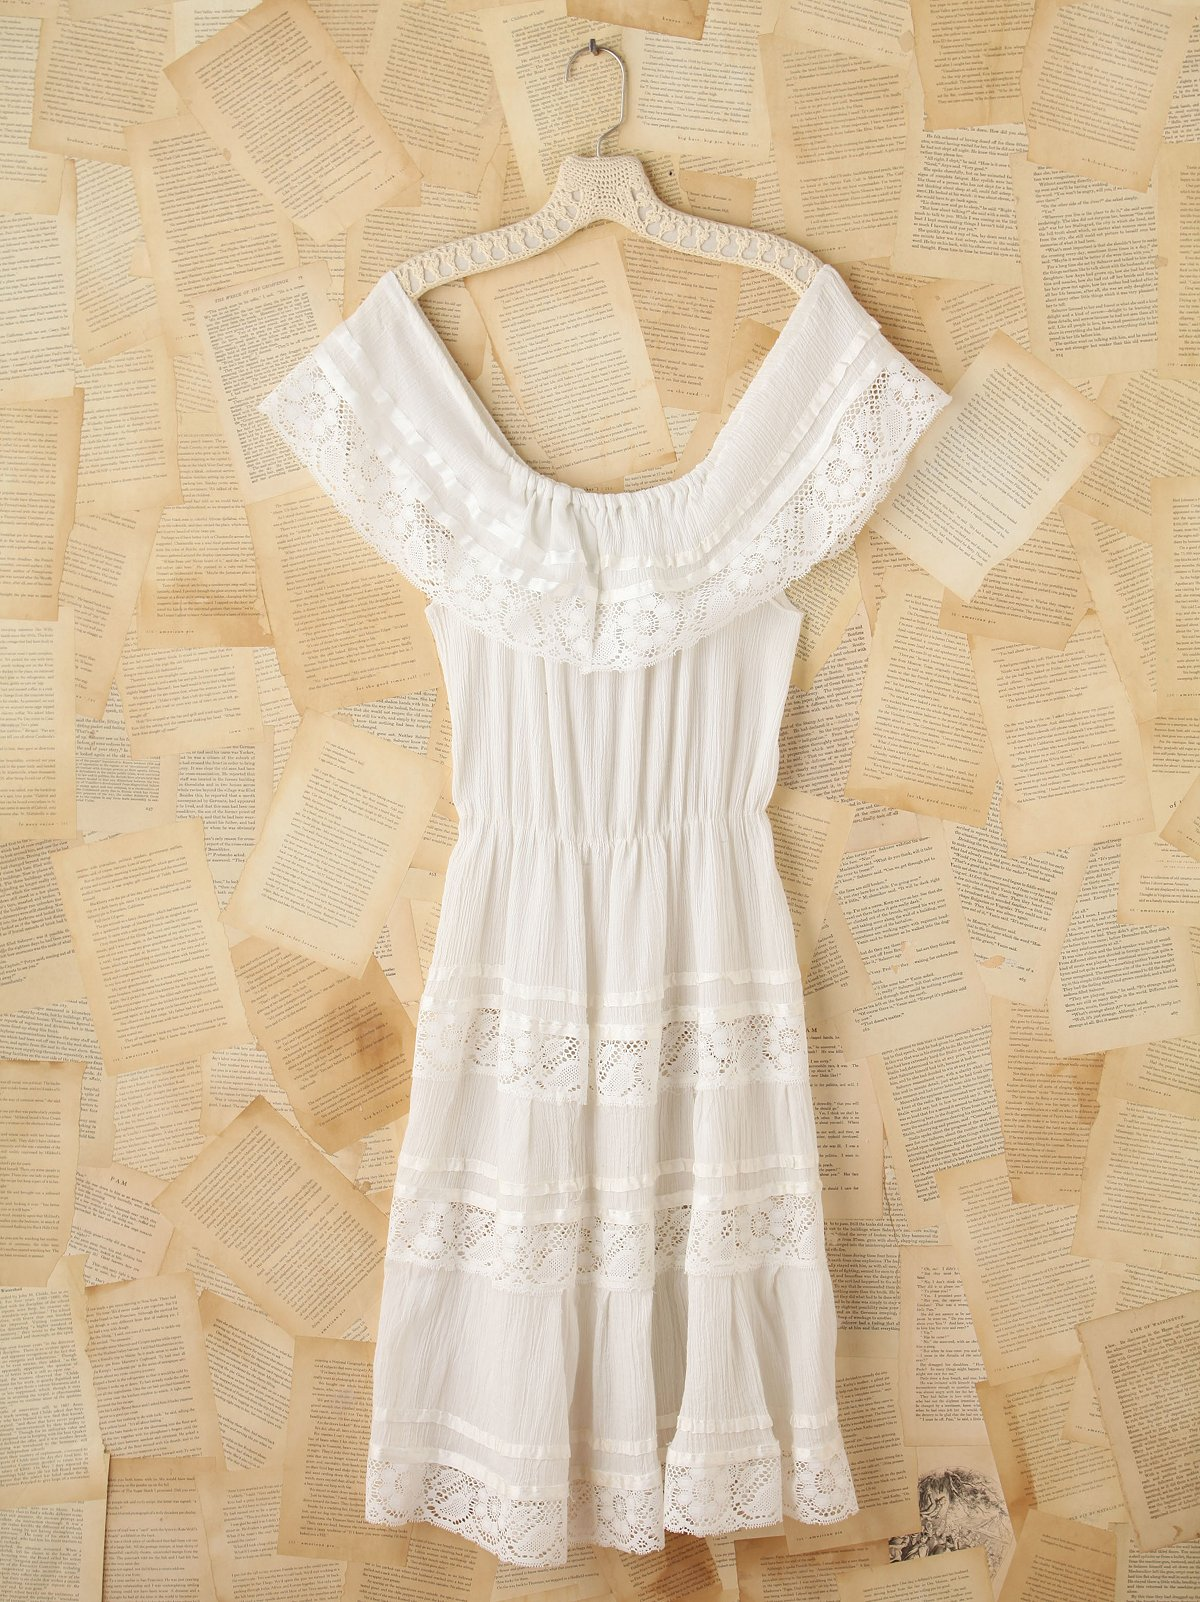 Vintage Short Sleeve Lace Dress